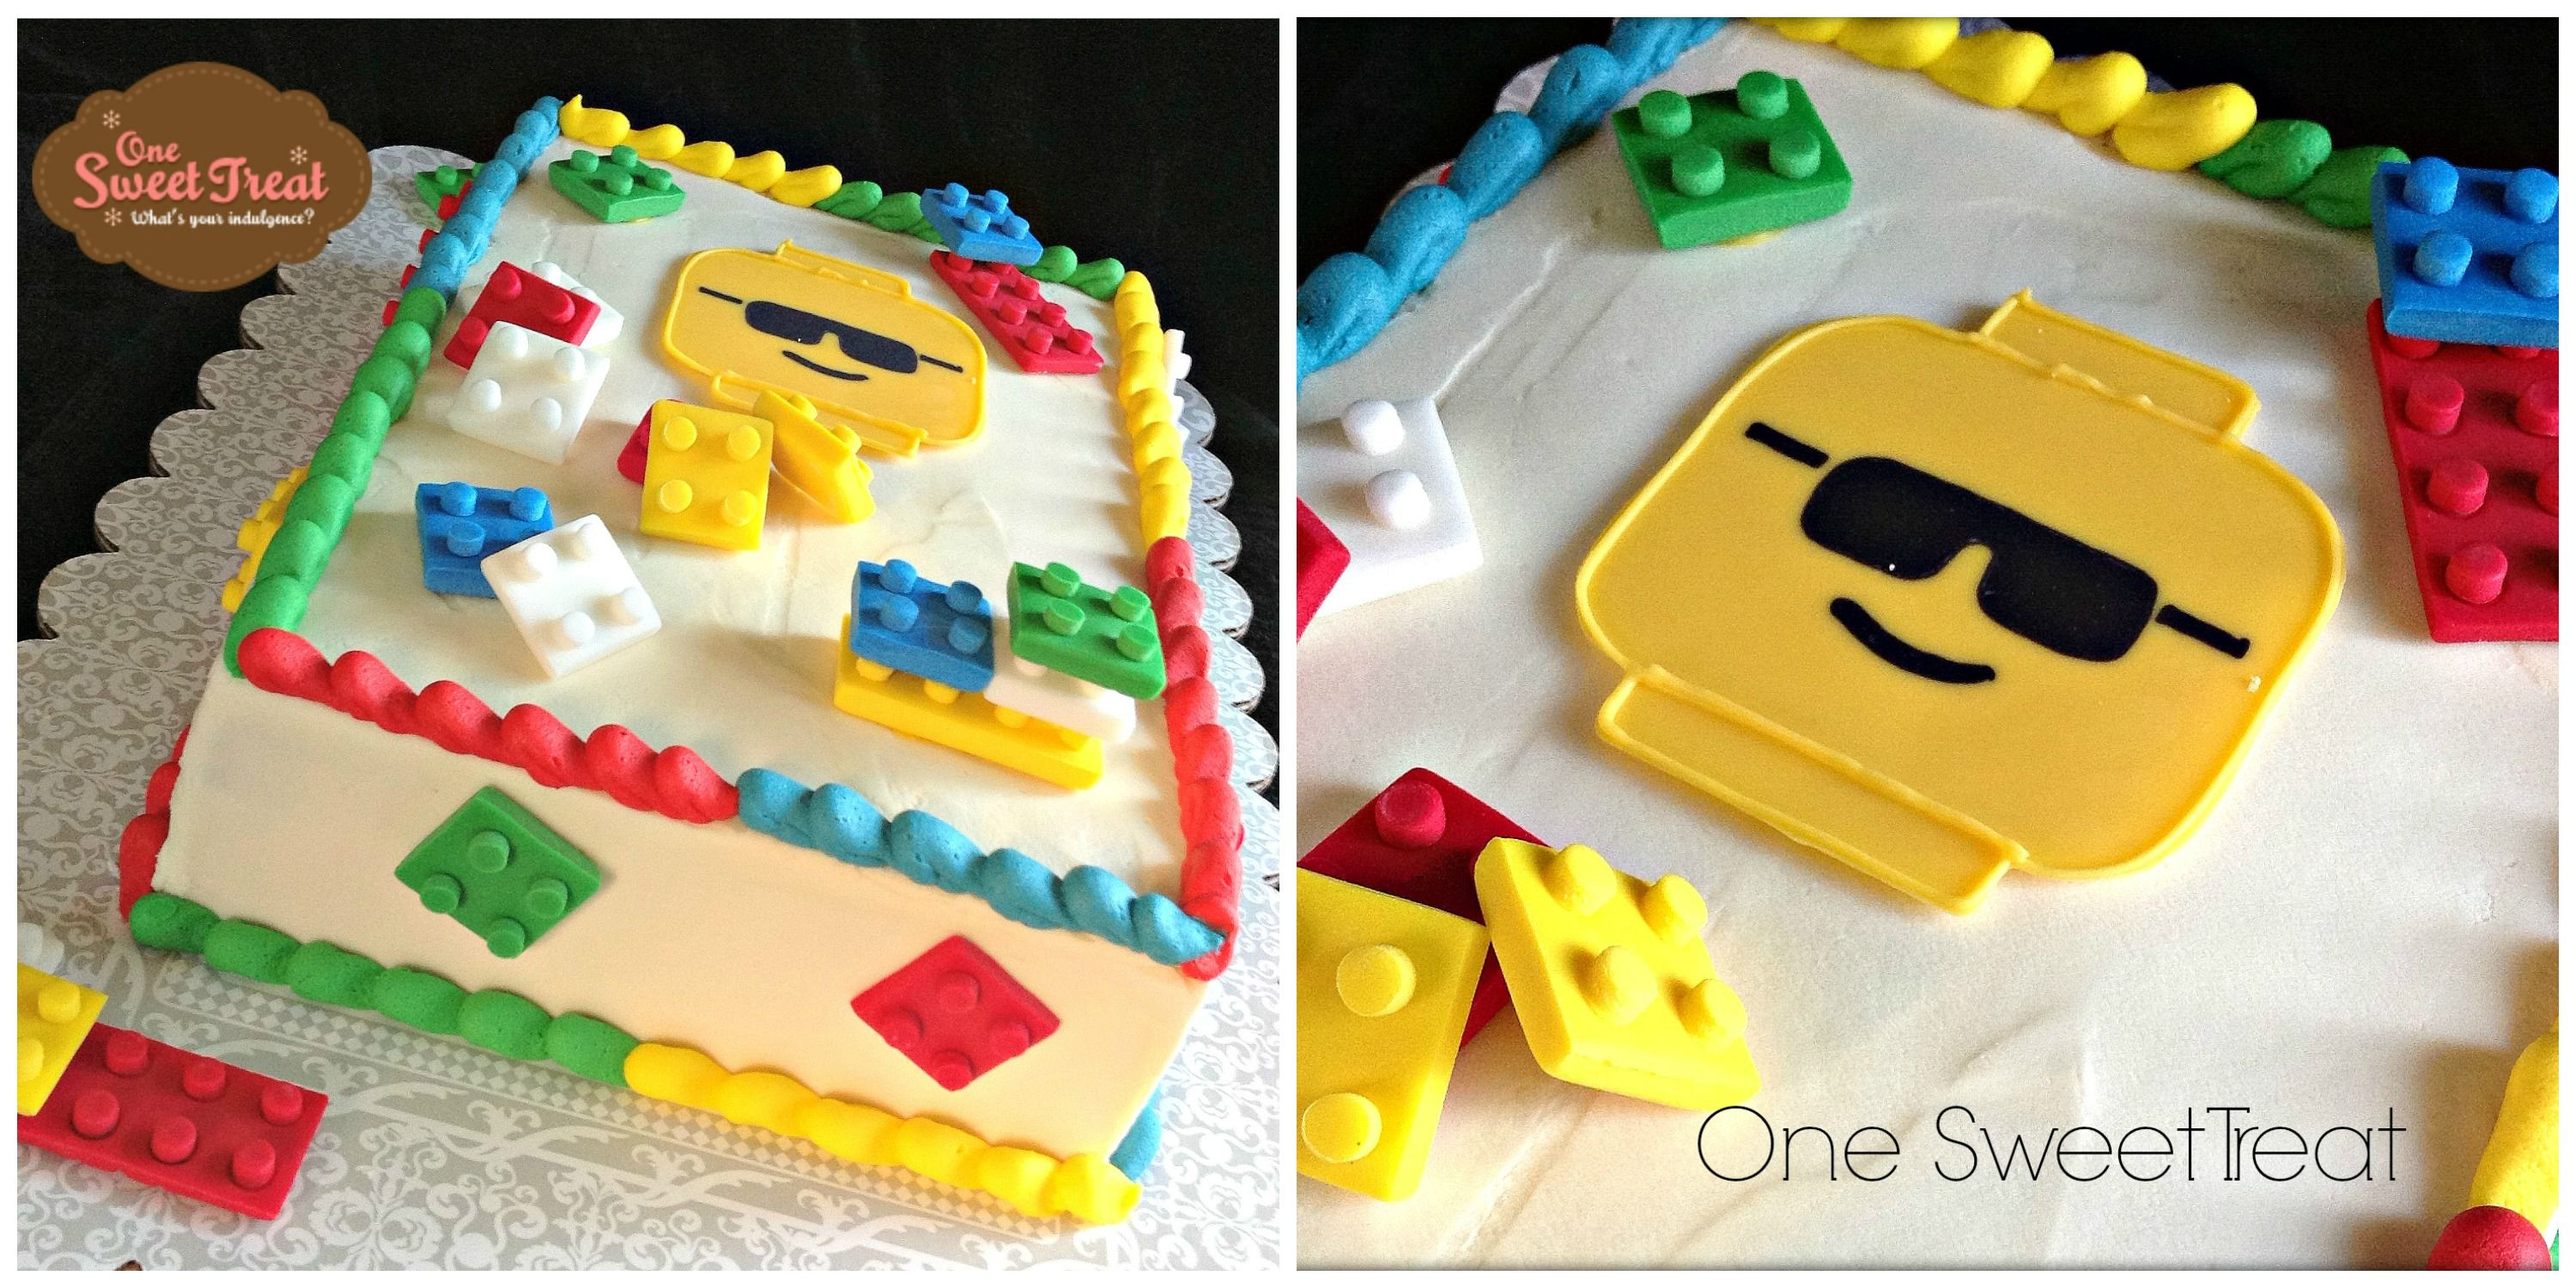 Lego Cake A Lego Theme Cake Covered In Buttercream And Decorated